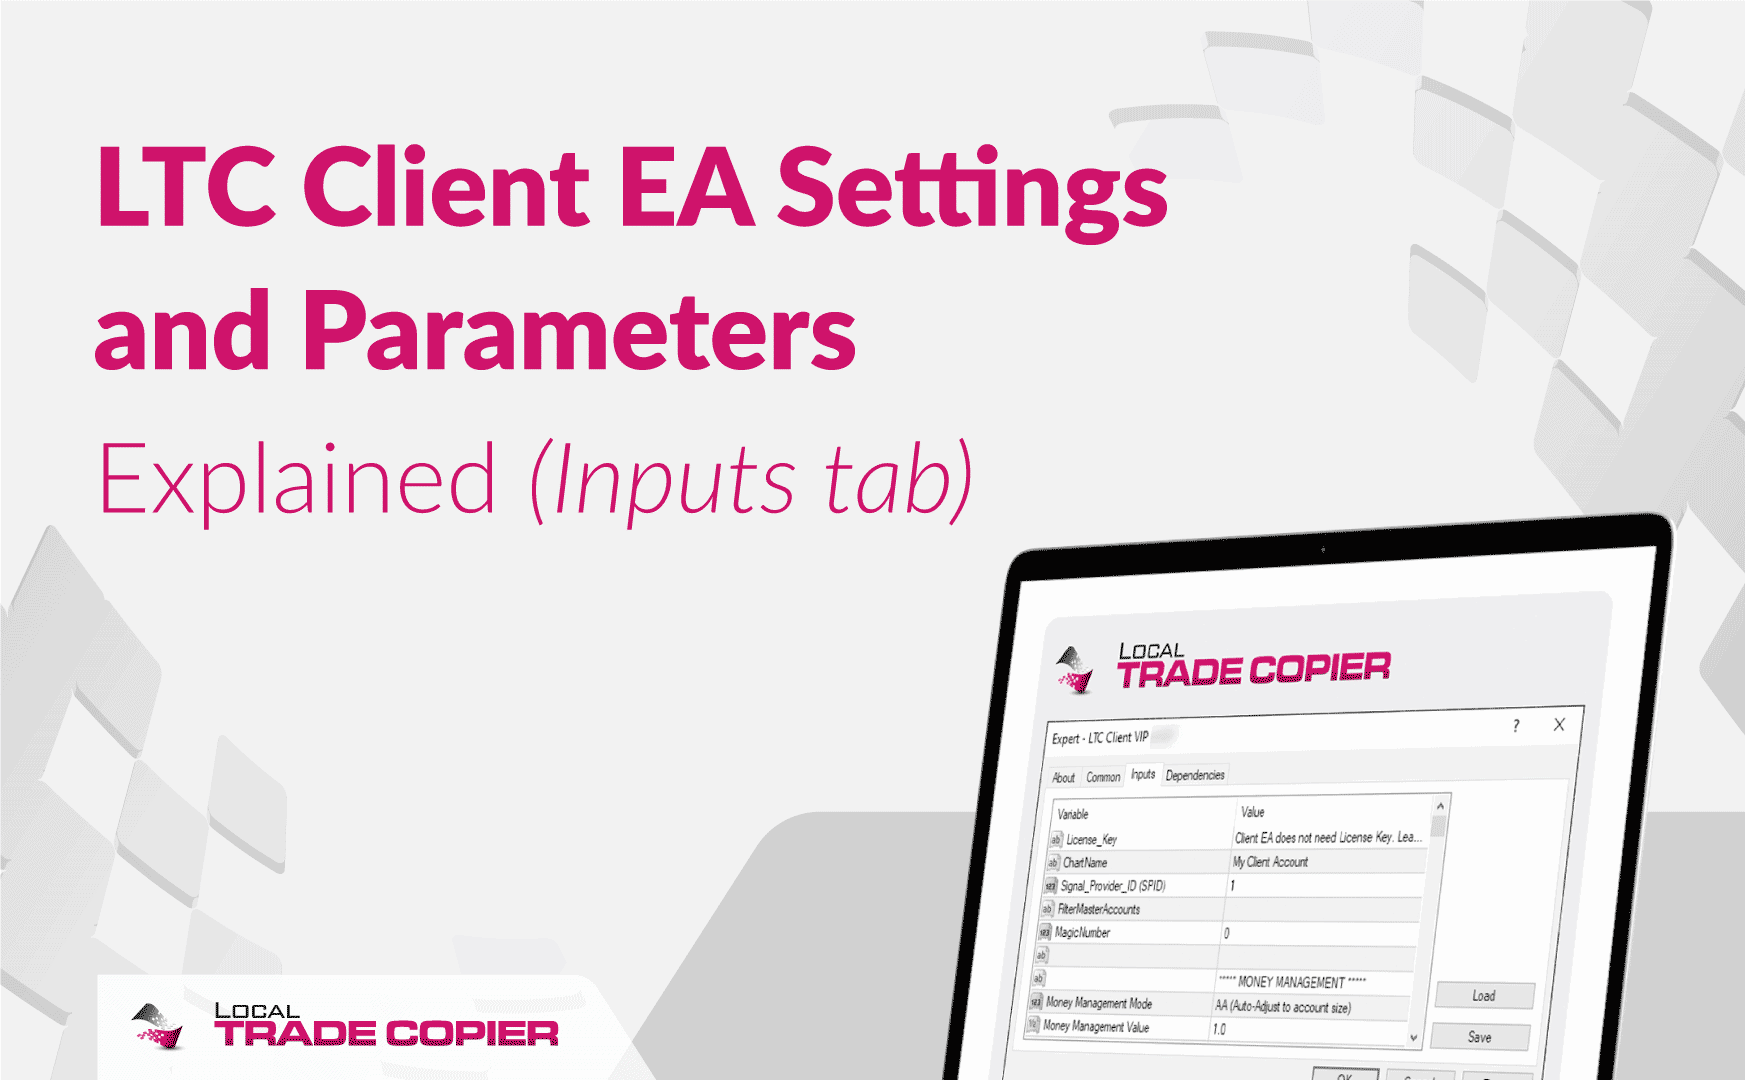 LTC Client EA Settings and Parameters Explained (Inputs tab)